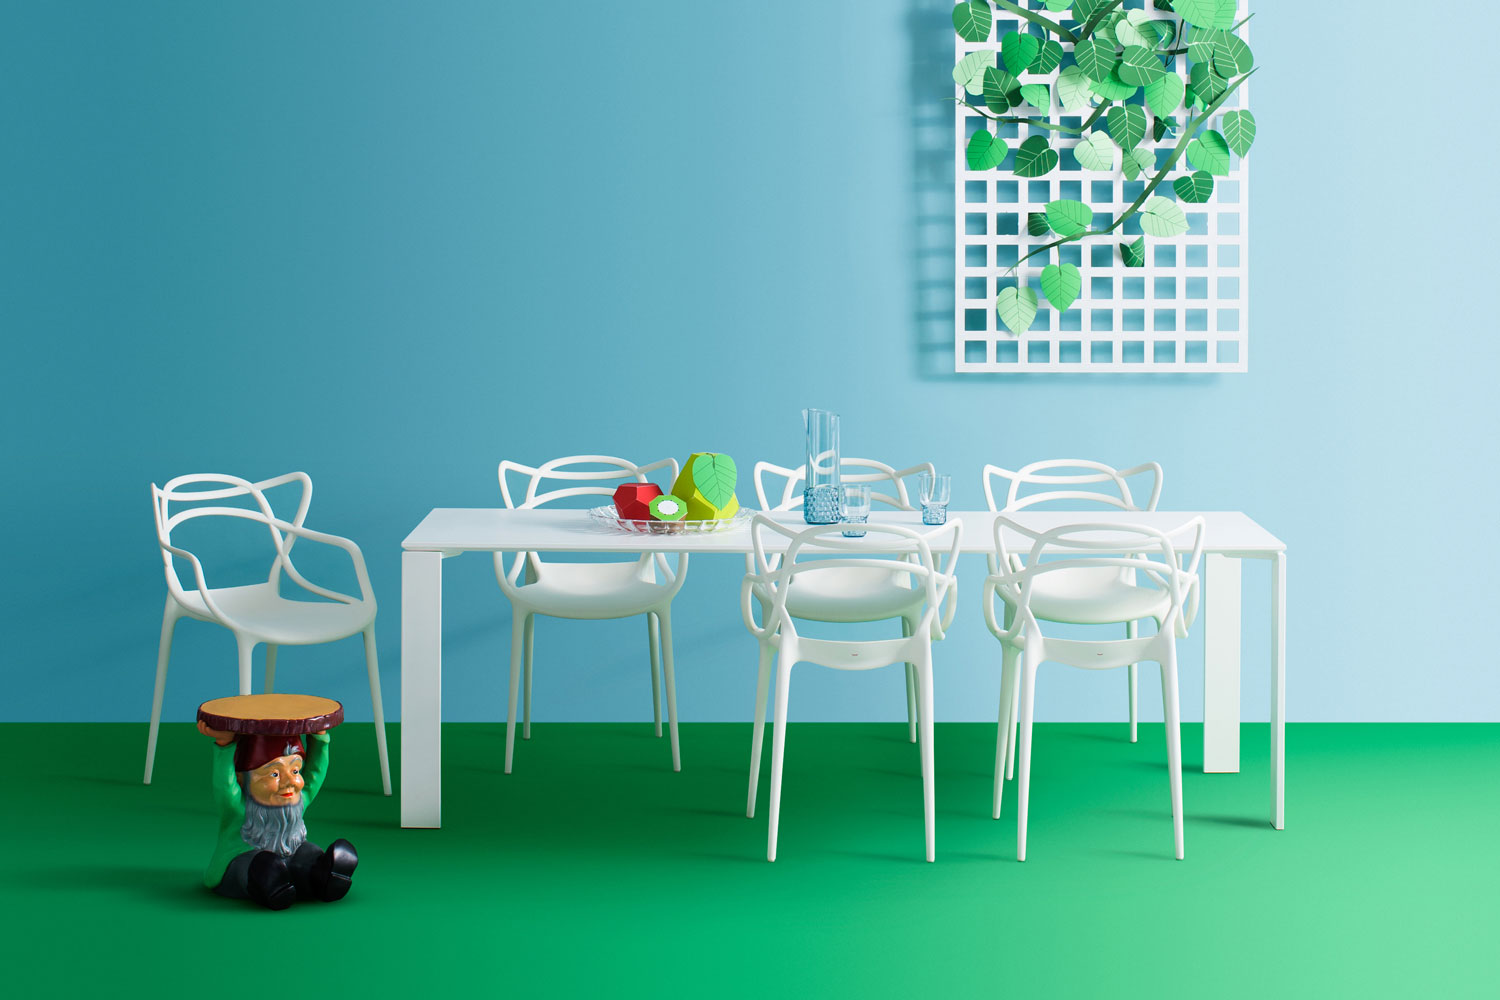 Home Design Ideas from iSaloni 2016: Kartell home design ideas Home Design Ideas from iSaloni 2016: Kartell outdoor dining